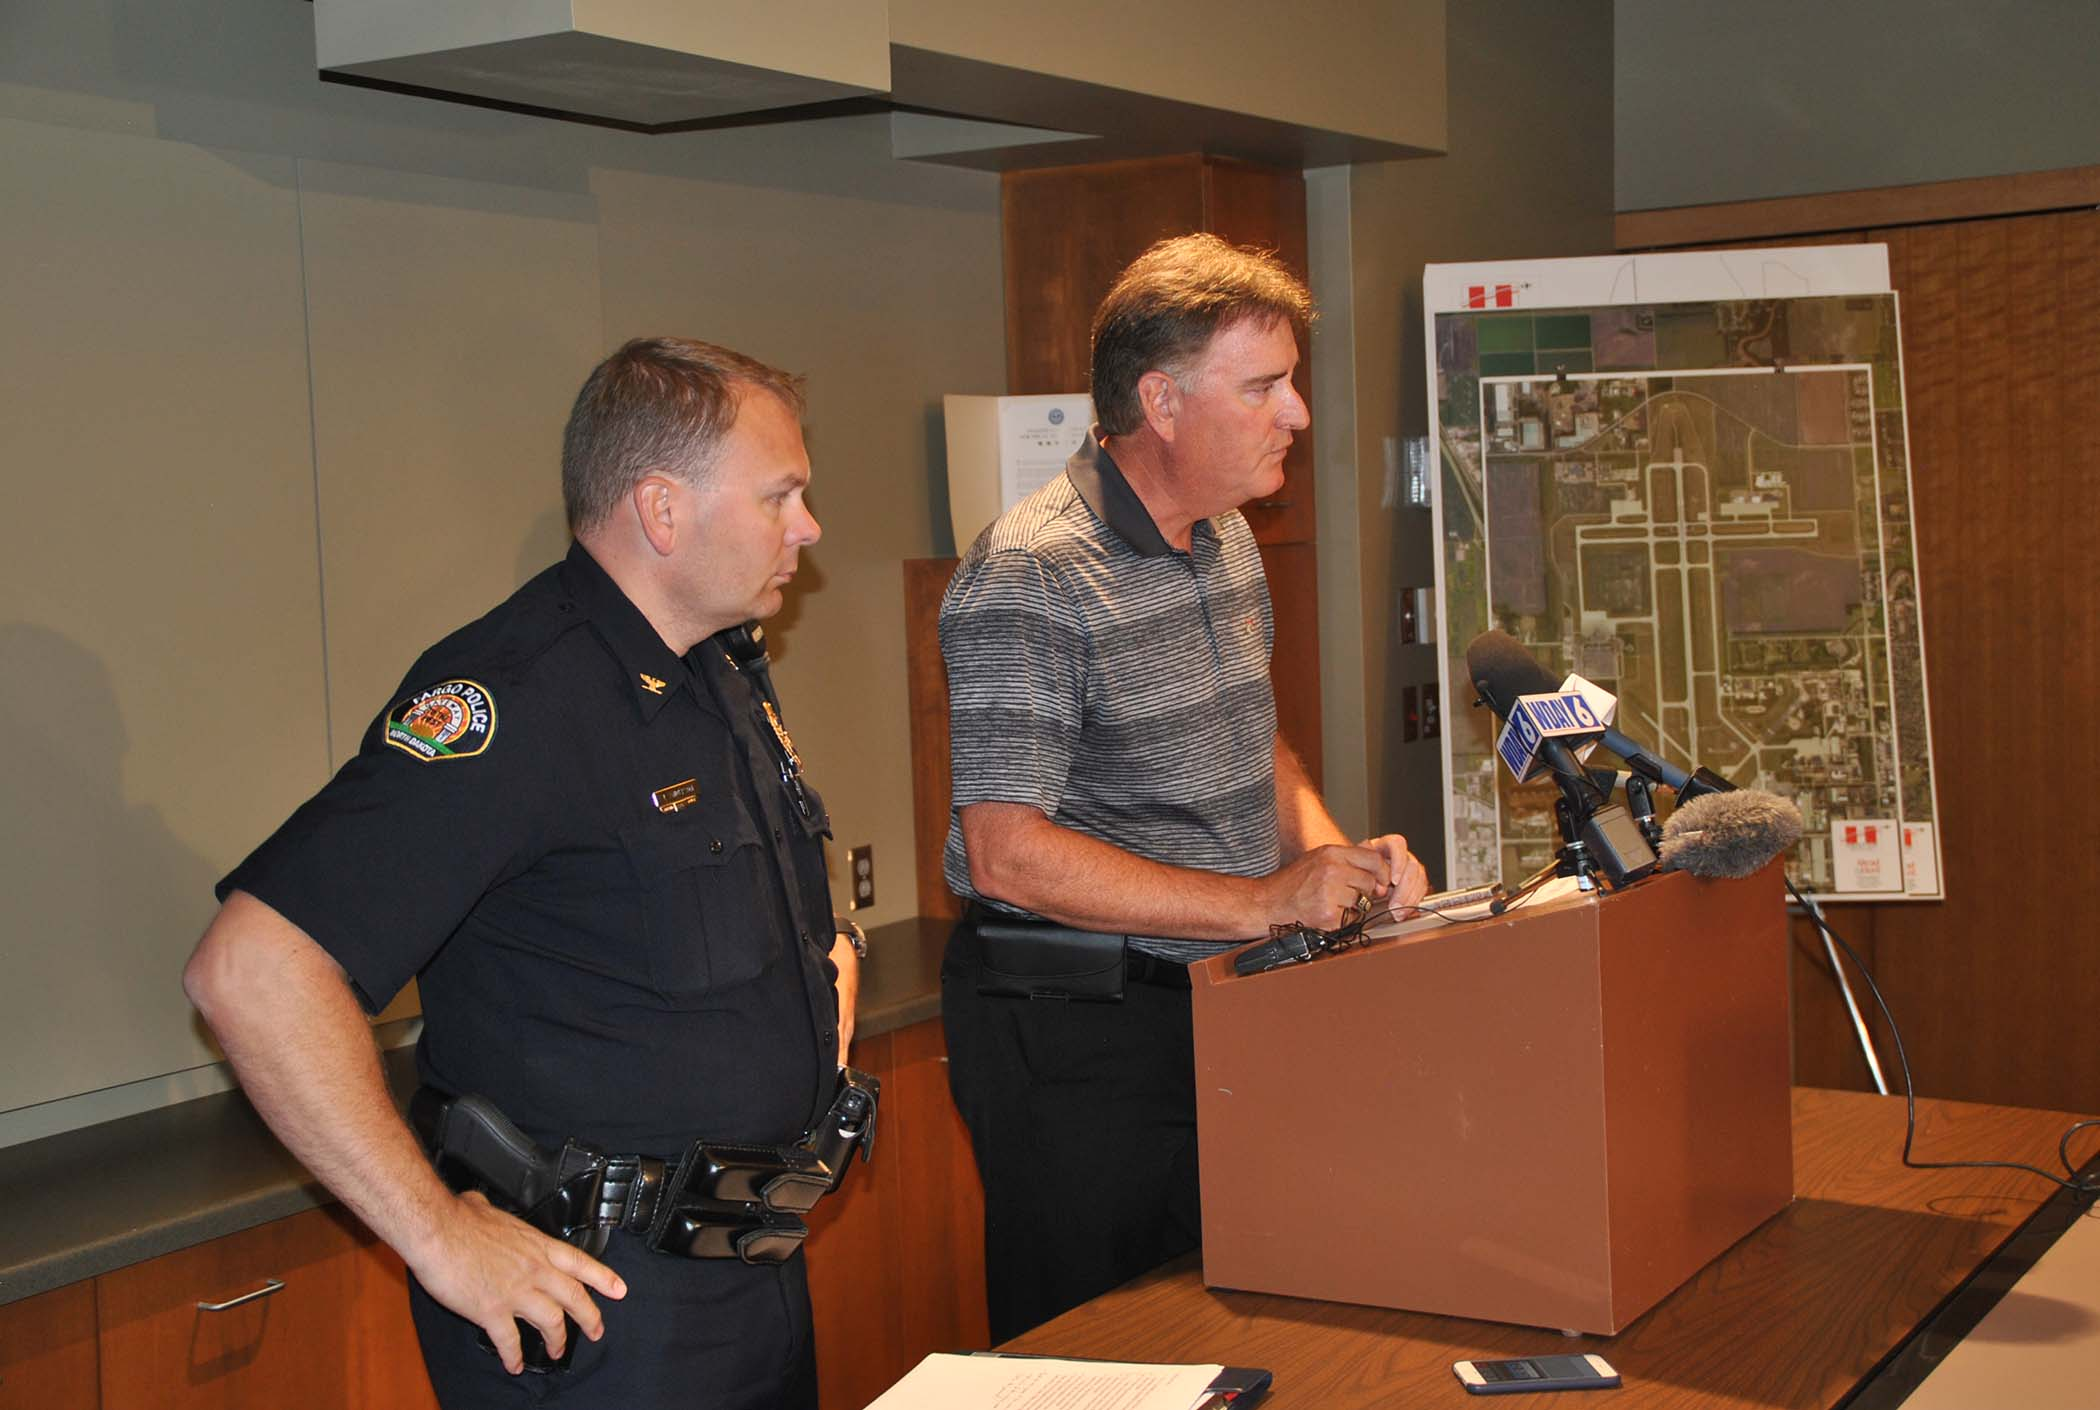 Airpot Authority Executive Director Shawn Dobberstein and Fargo Police Deputy Chief Jospeh Anderson call a press conference to relay details about the death at Hector Airport early Monday morning - photo by C.S. Hagen